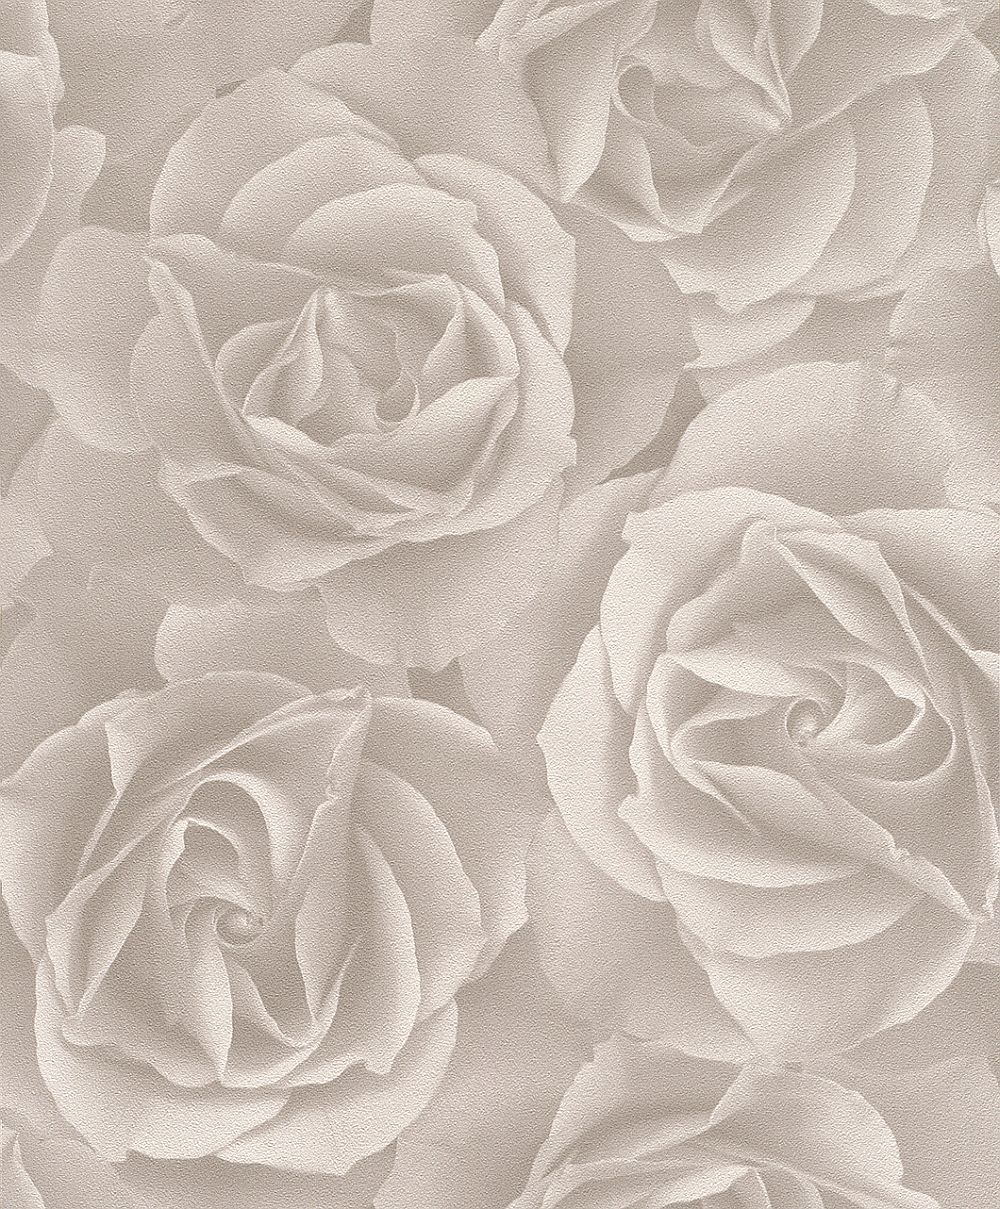 Albany Digital Rose Grey Wallpaper - Product code: 525601